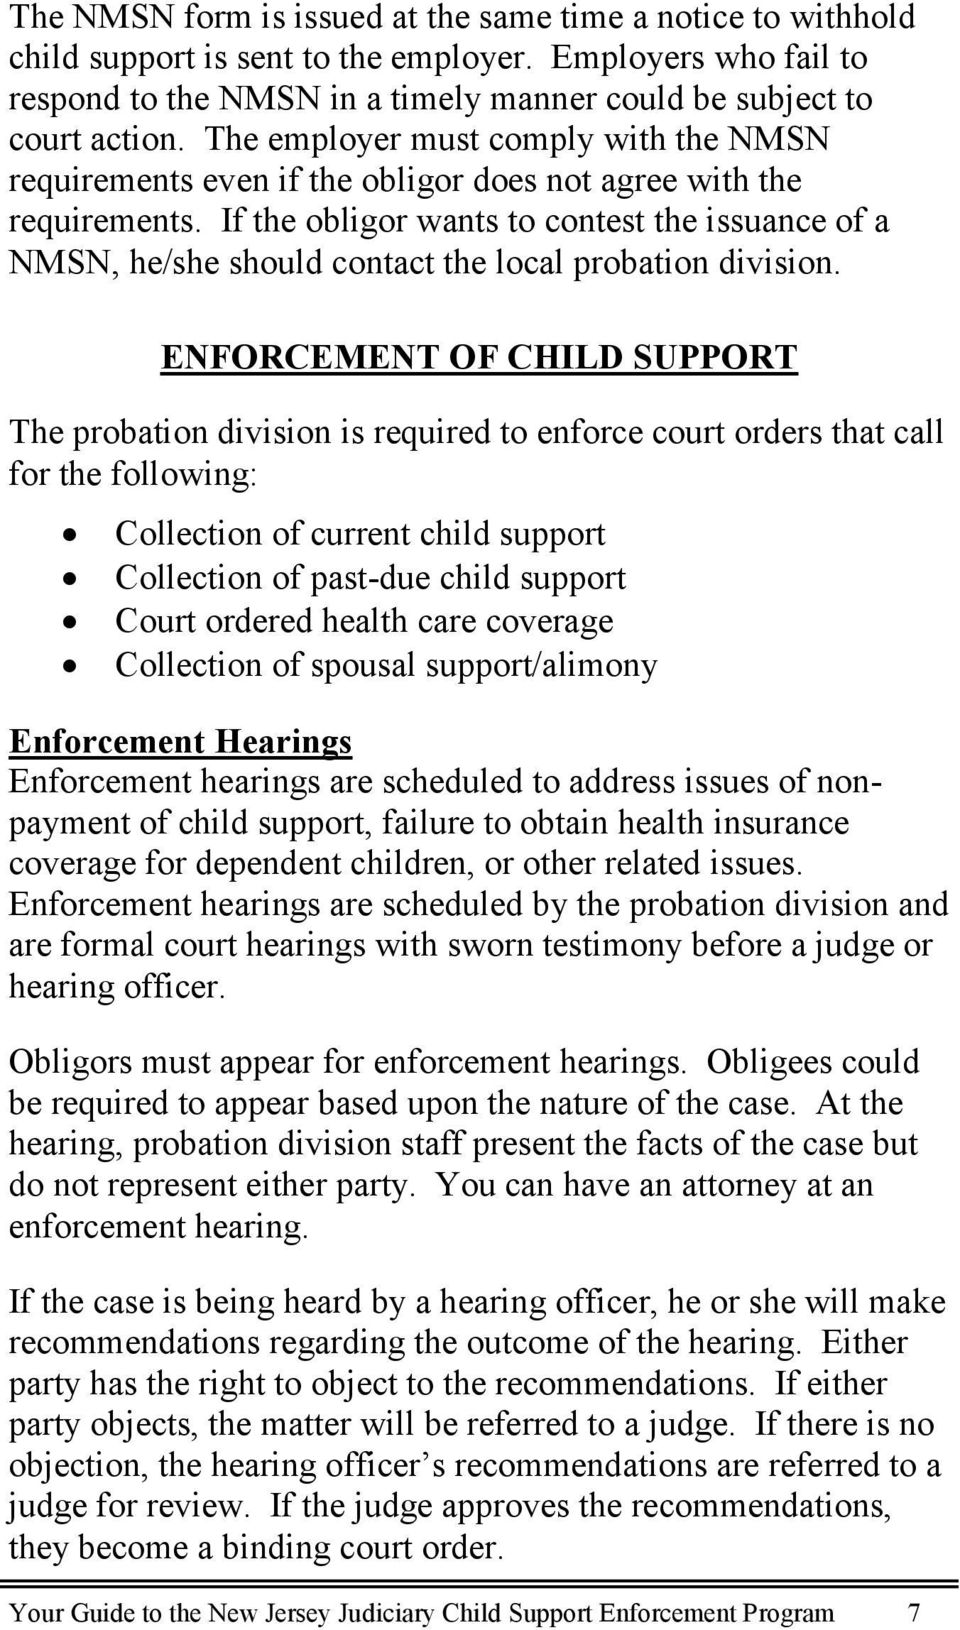 Your Guide To The New Jersey Judiciary Child Support Enforcement